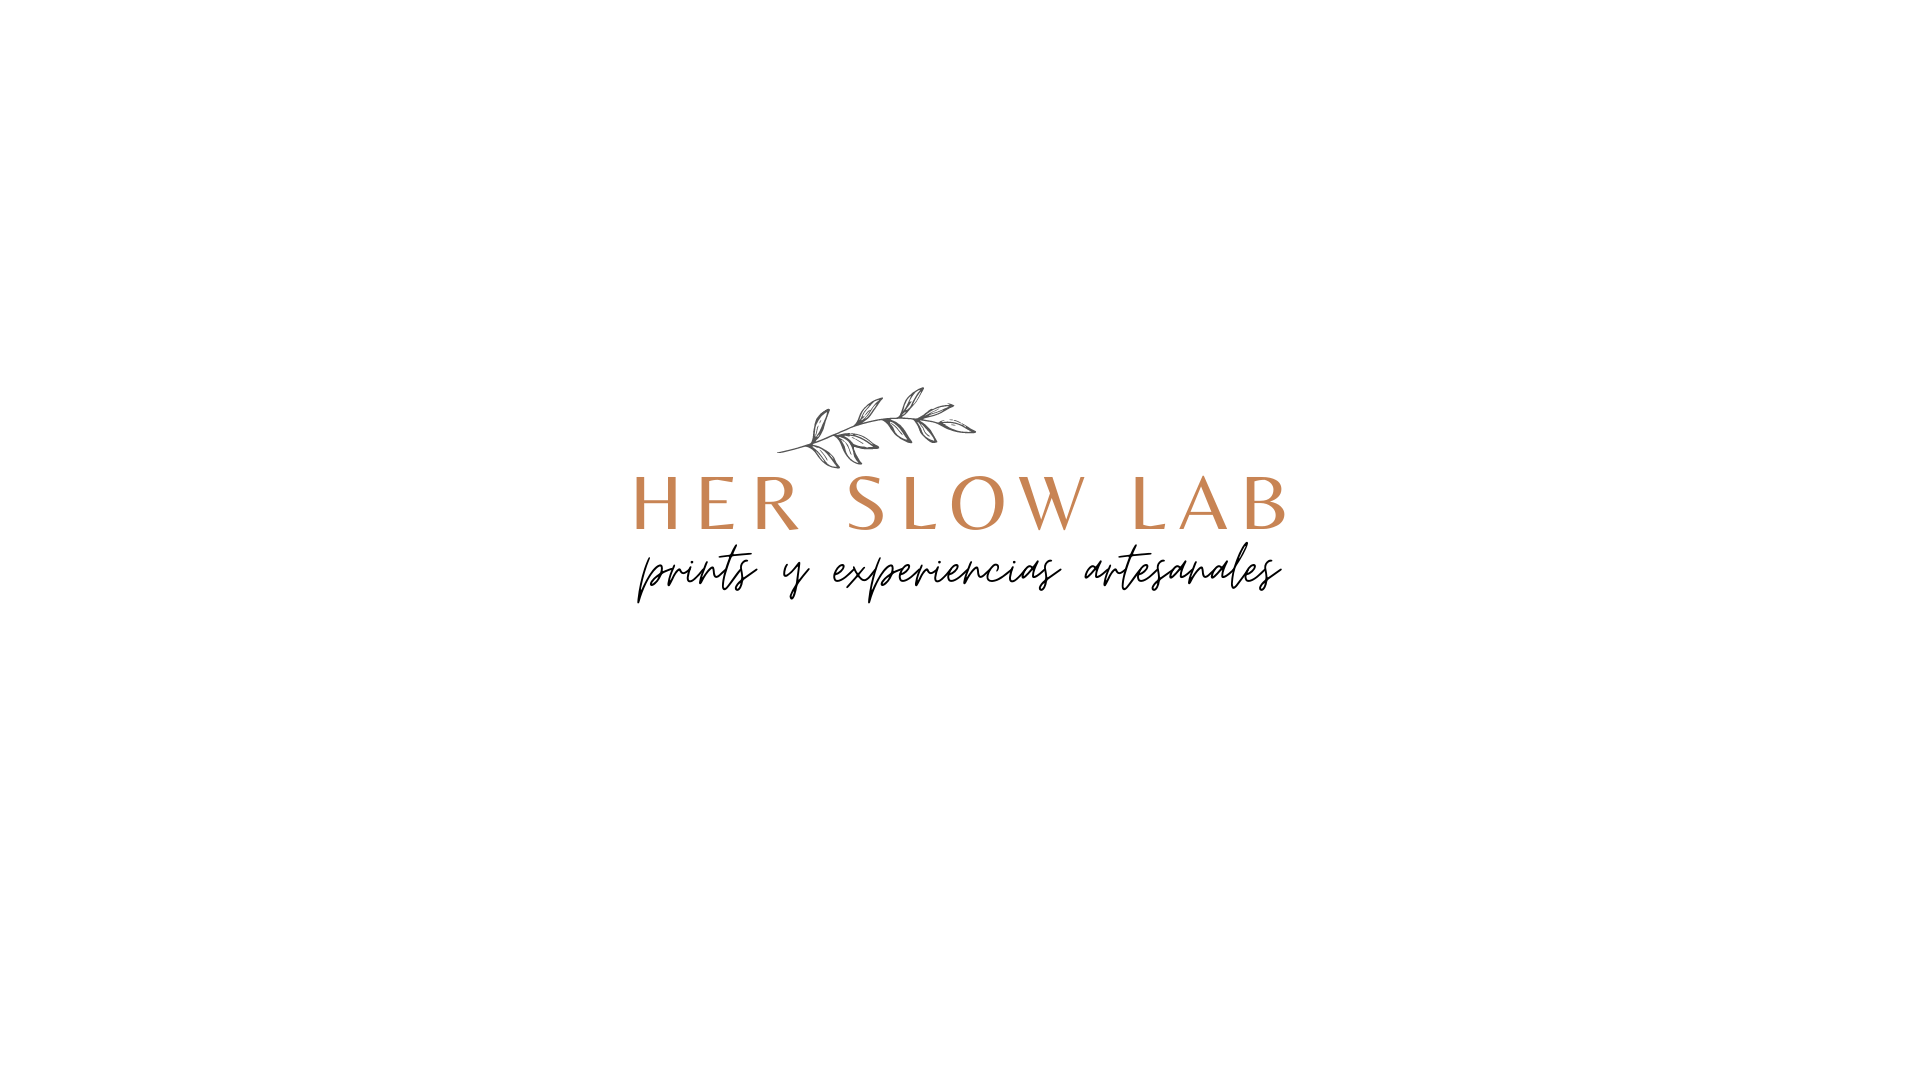 Her Slow Lab.